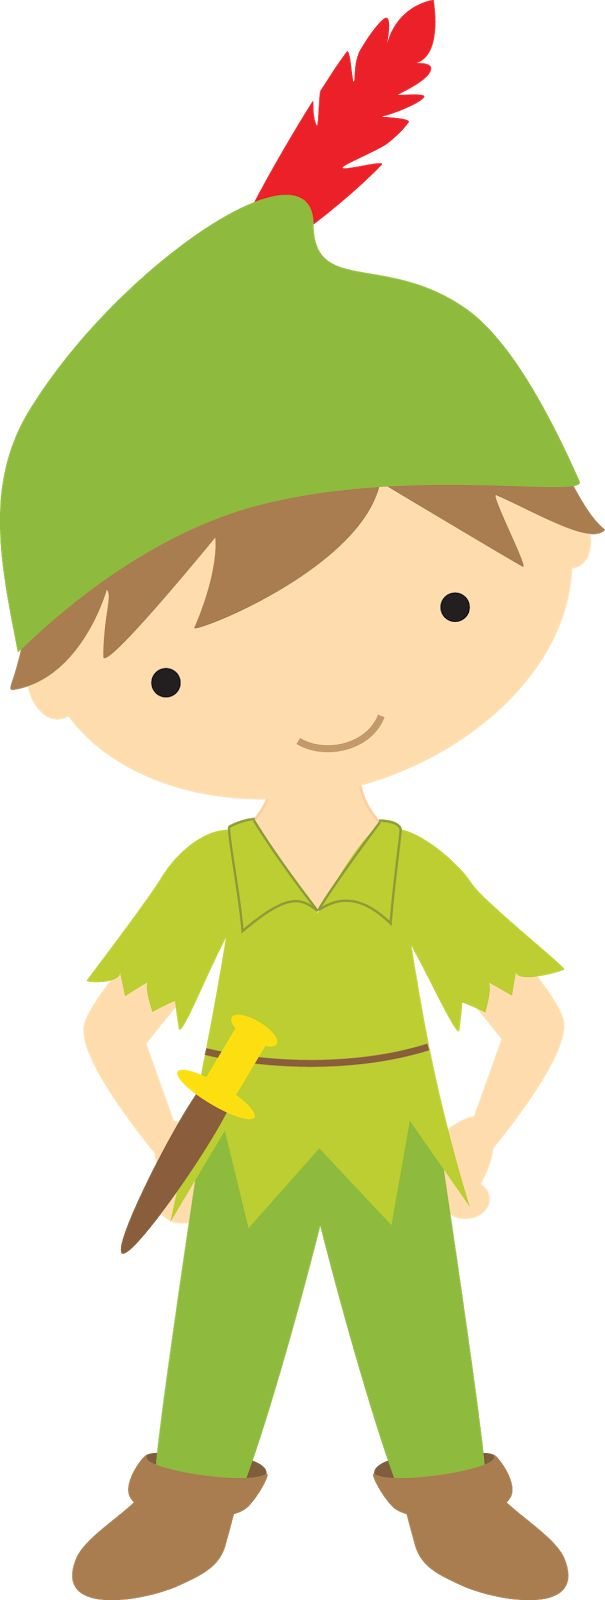 166 best baby peter pan images on pinterest peter o toole peter rh pinterest com peter pan characters clipart peter pan clipart silhouette